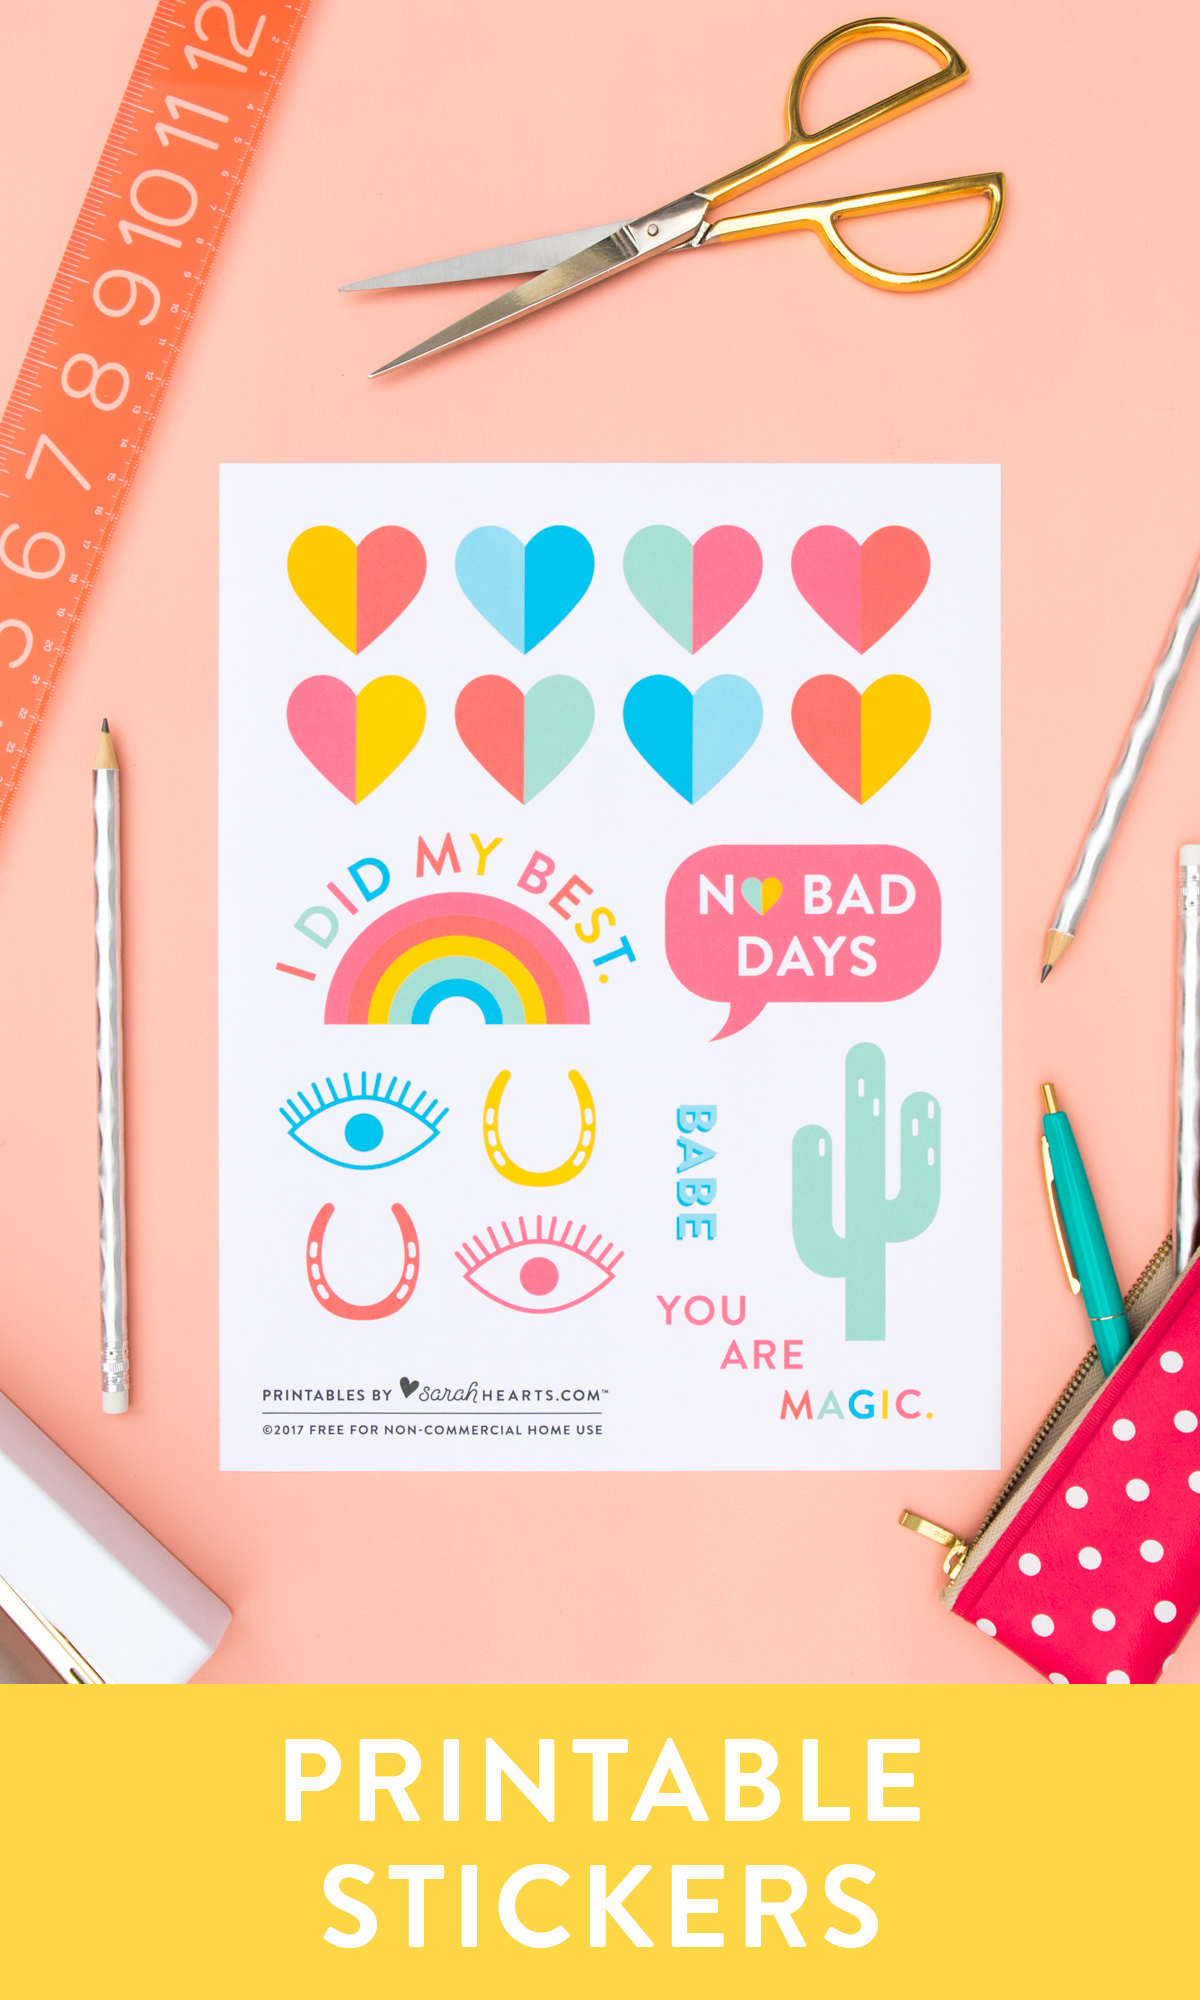 Free printable back to school stickers! Print them on @avery white, clear or metallic sticker paper to customize all your supplies.